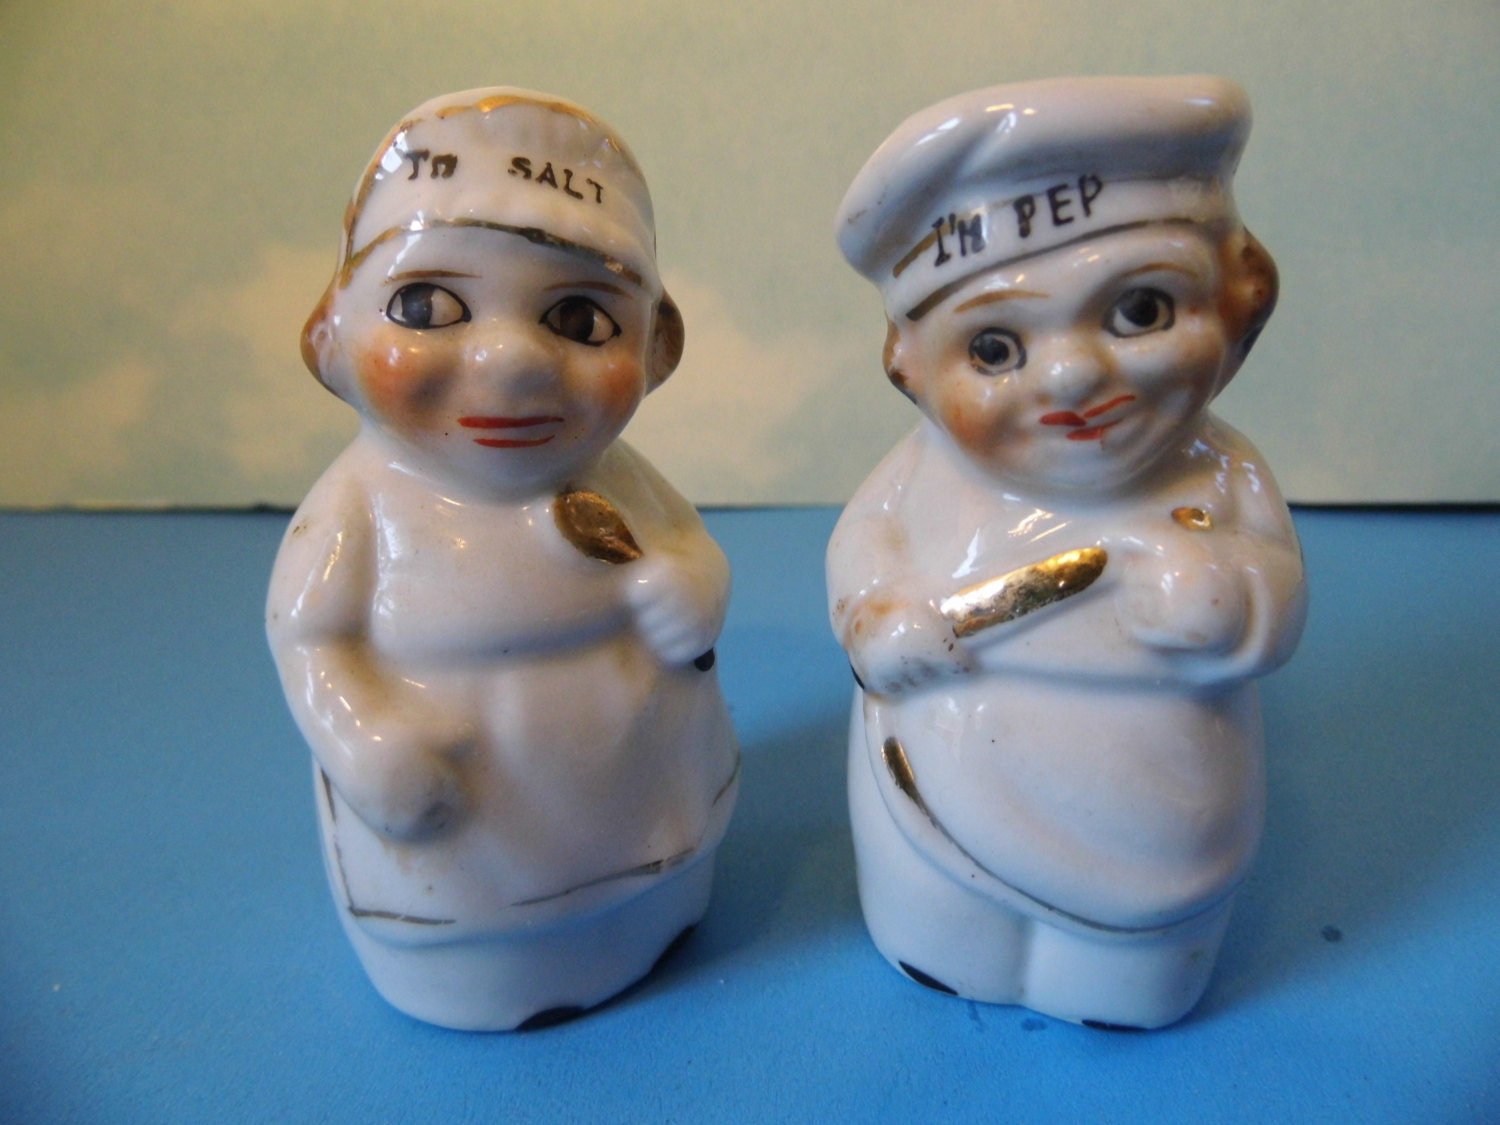 Vintage Kitchen Cook Baker Chef Couple Salt & Pepper Shakers- Japan - GrasshoppersTreasure